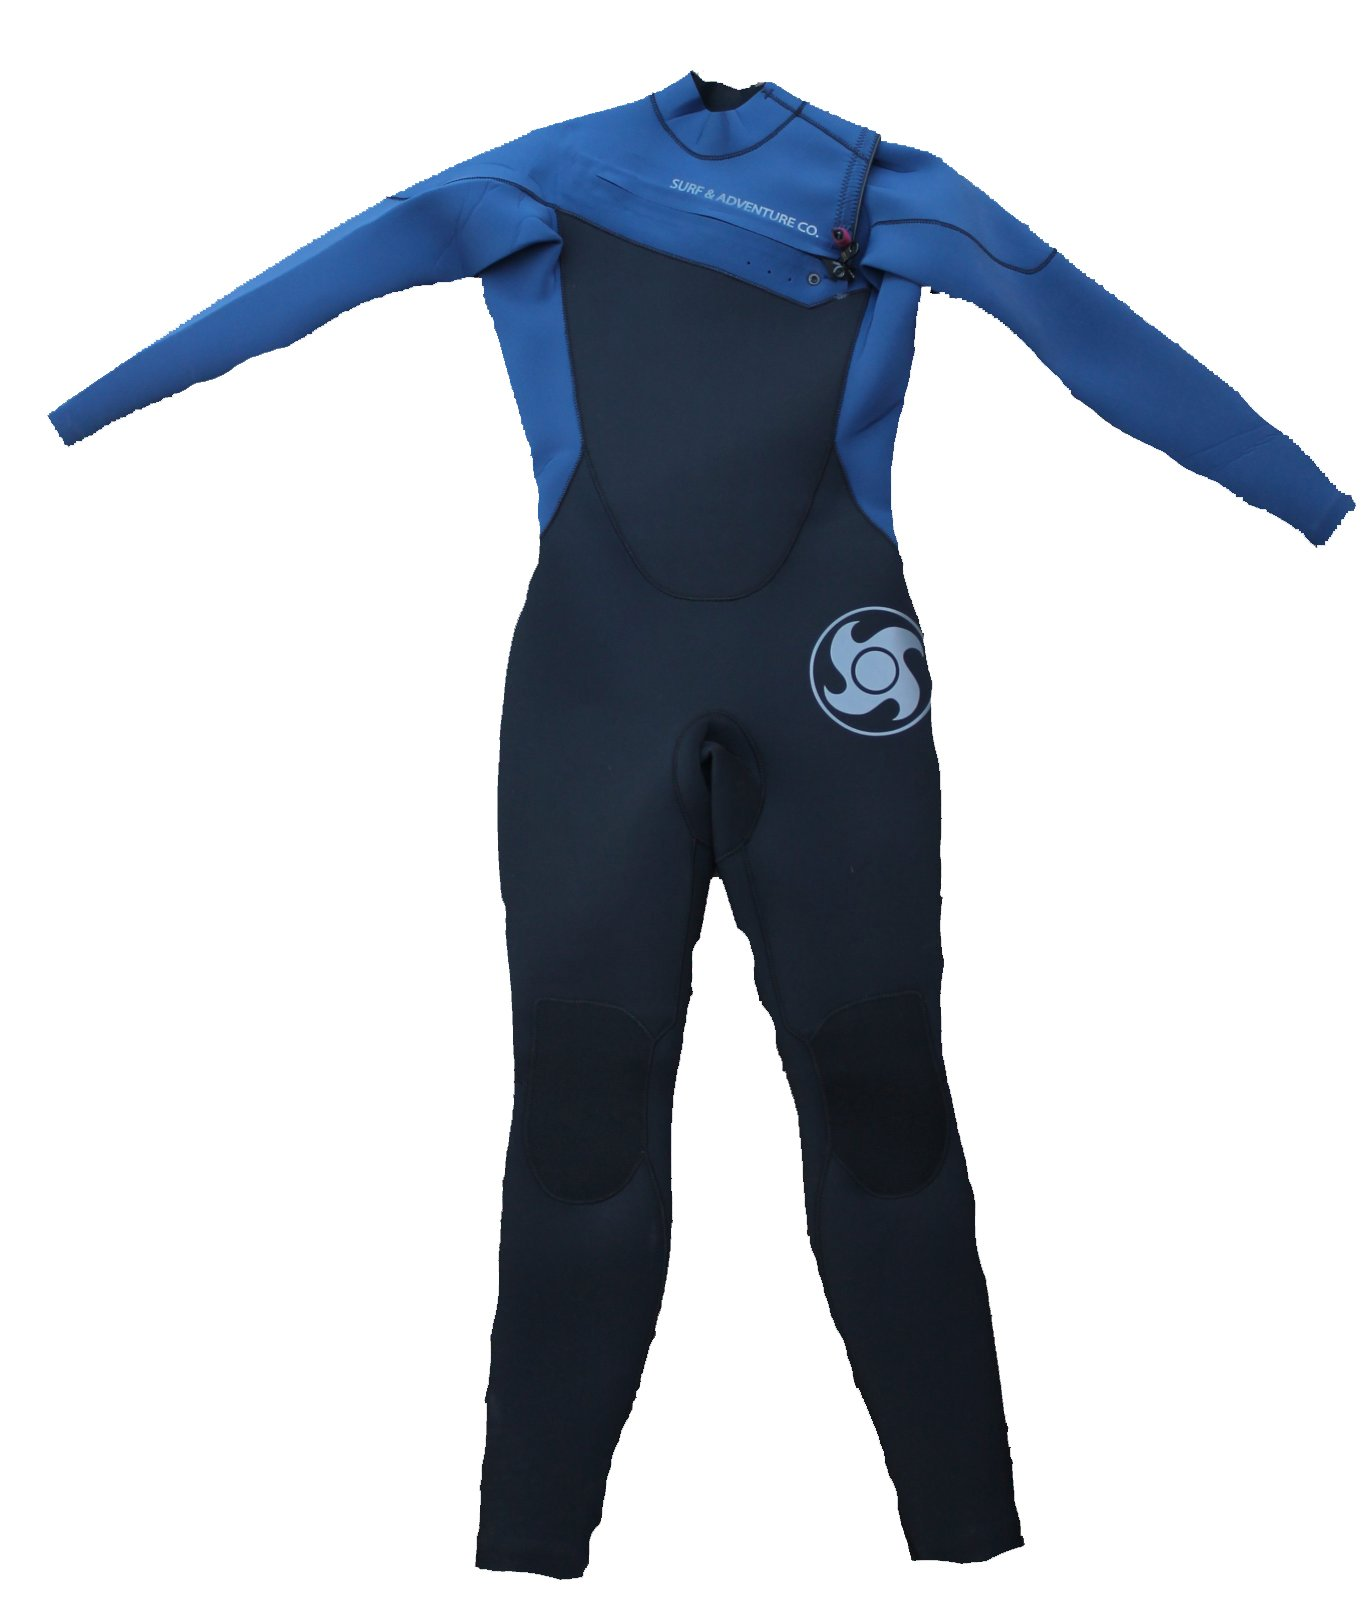 Junior 3/2 Chest Zip Wetsuit